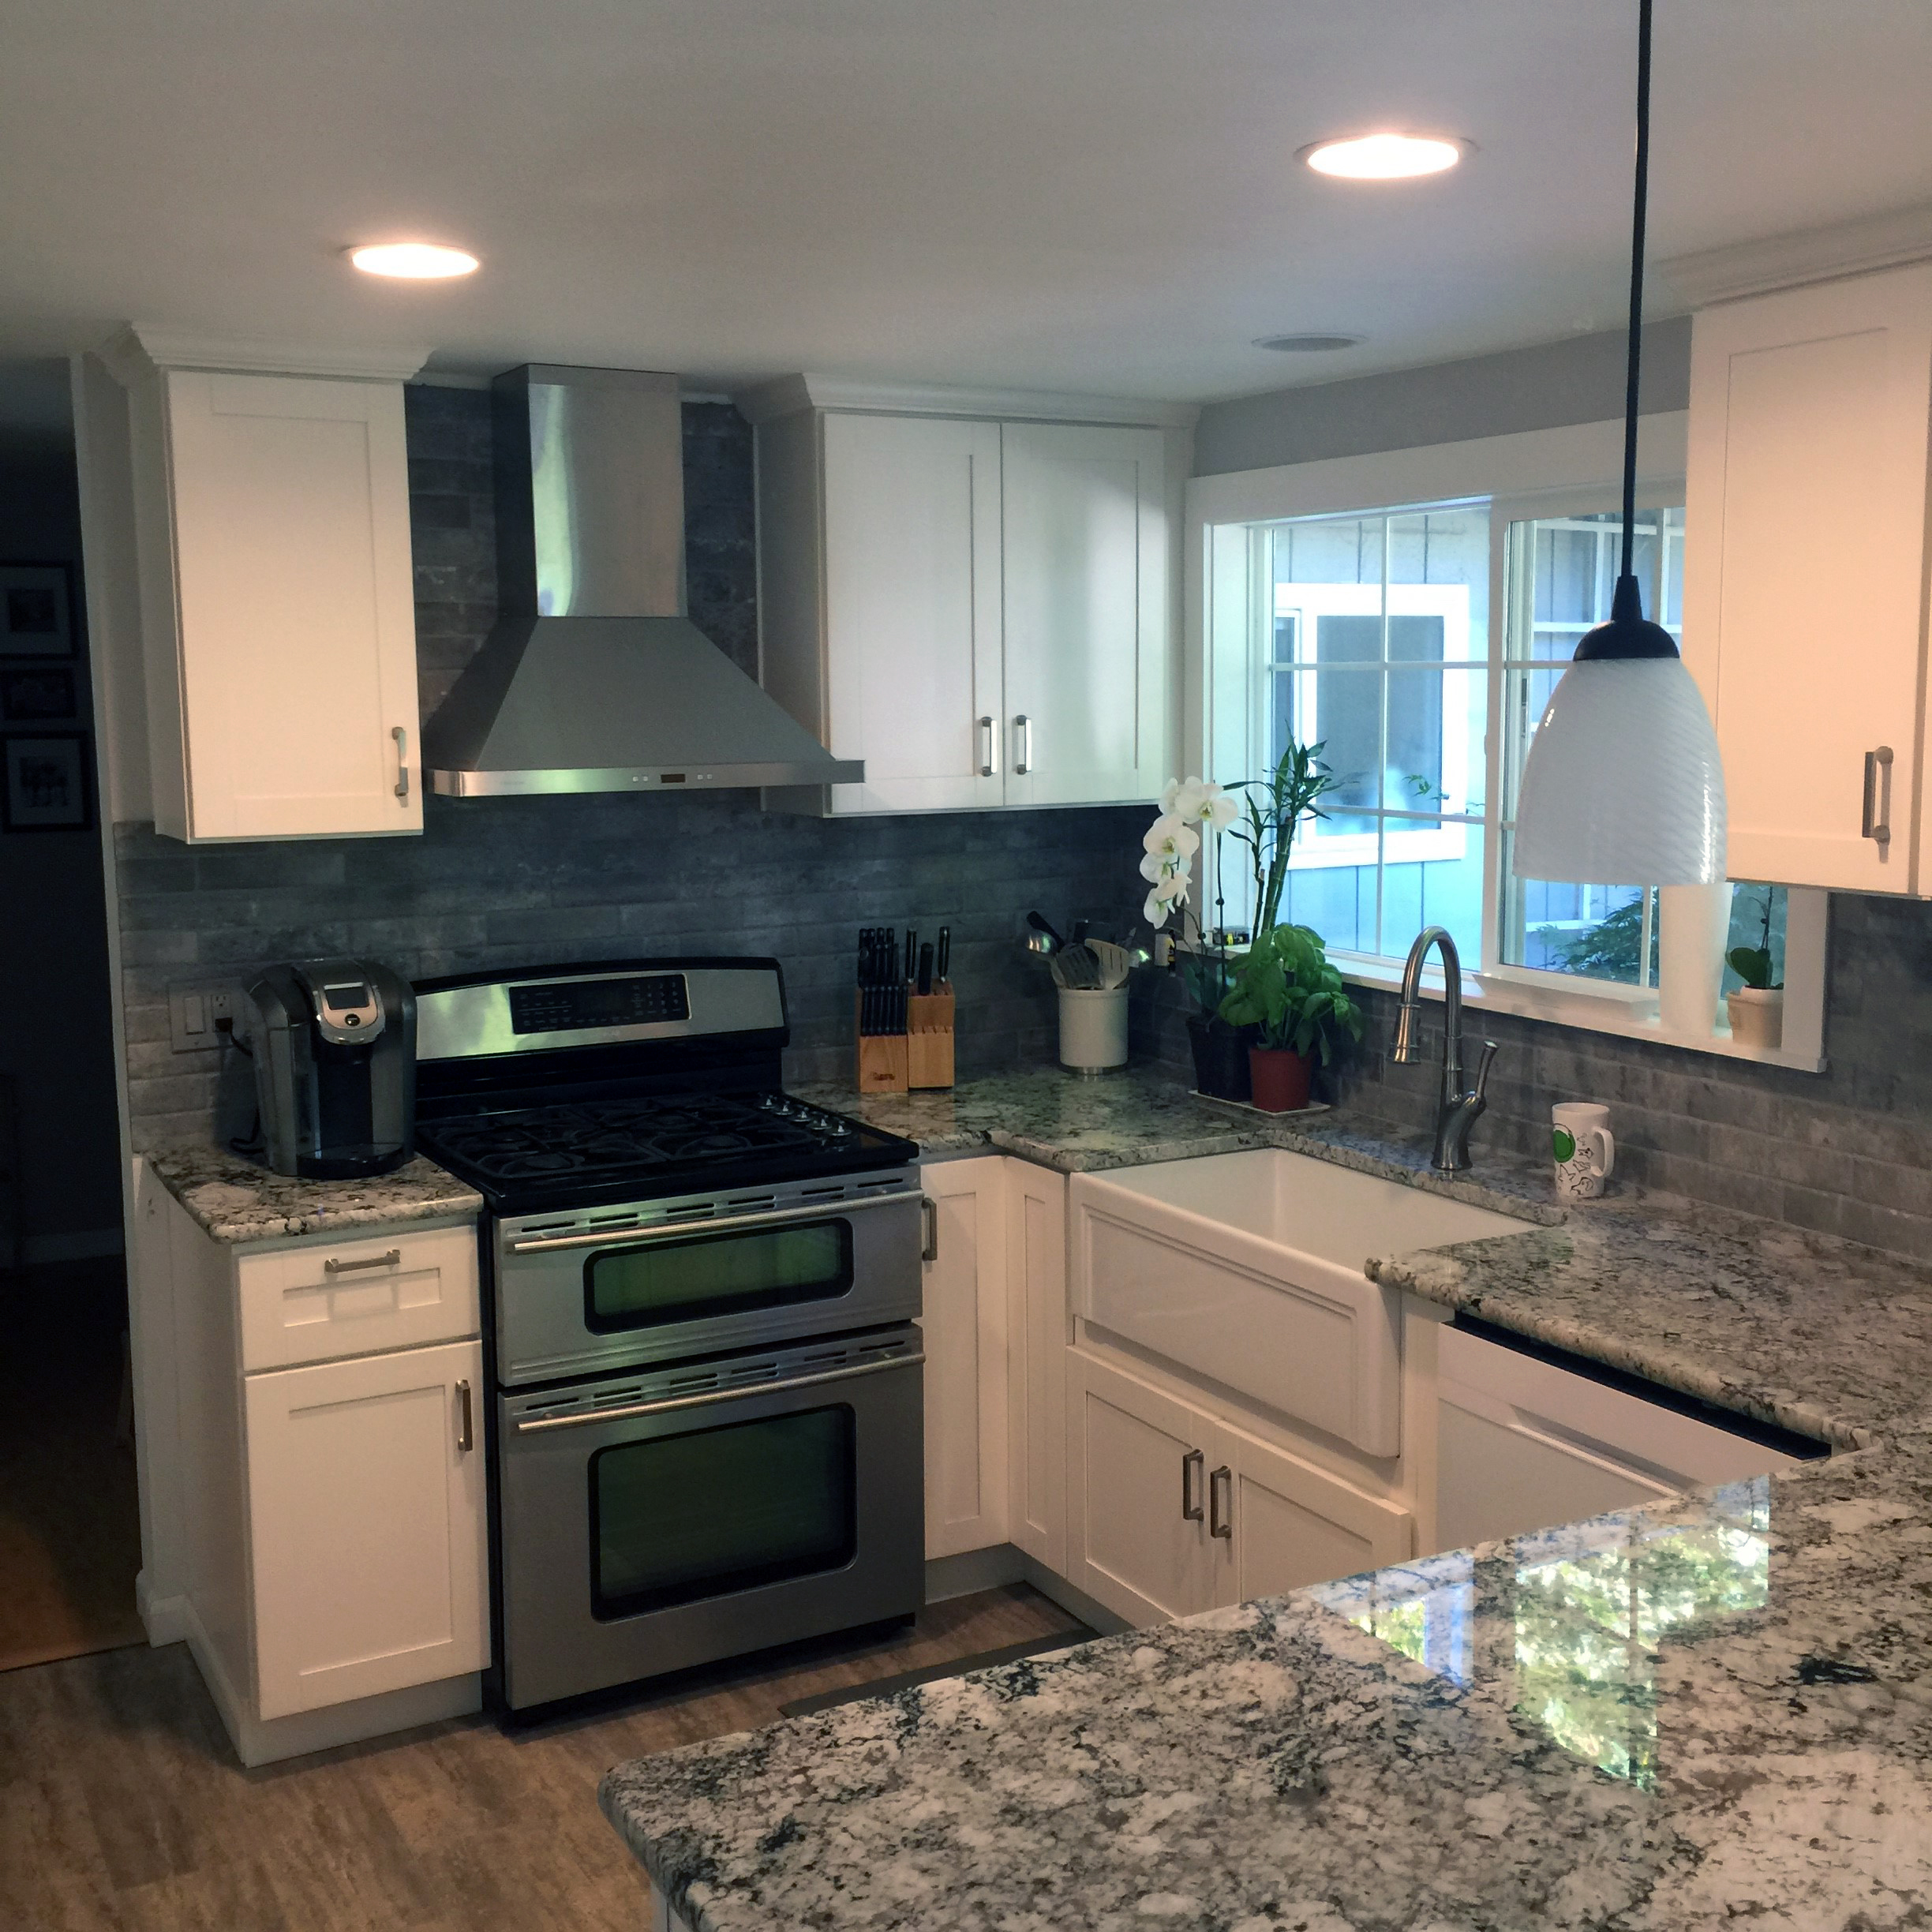 S and K Contracting Seattle Auburn Hale 1 Kitchen Project [at 70 x 72] edited by Graham Hnedak Brand G Creative 25 OCT 2017.jpg